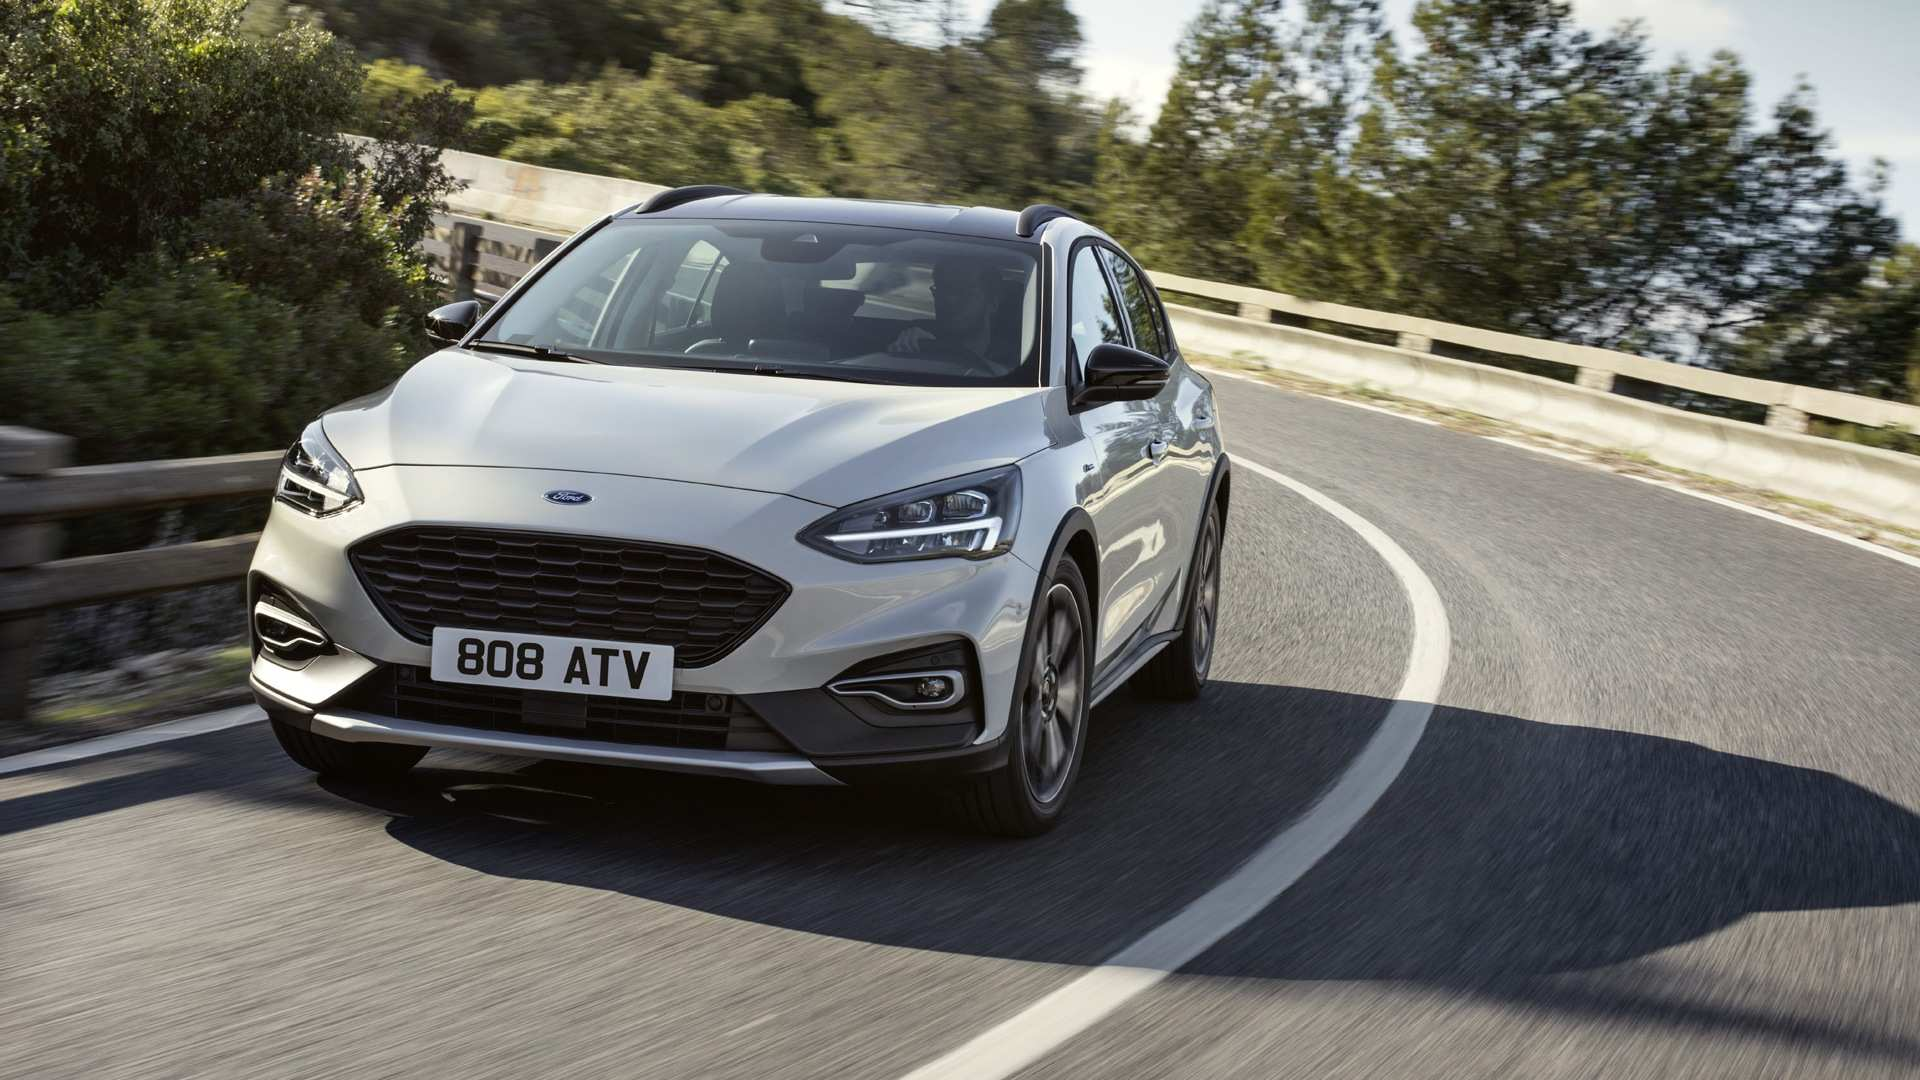 37 All New 2020 Ford Focus Style by 2020 Ford Focus